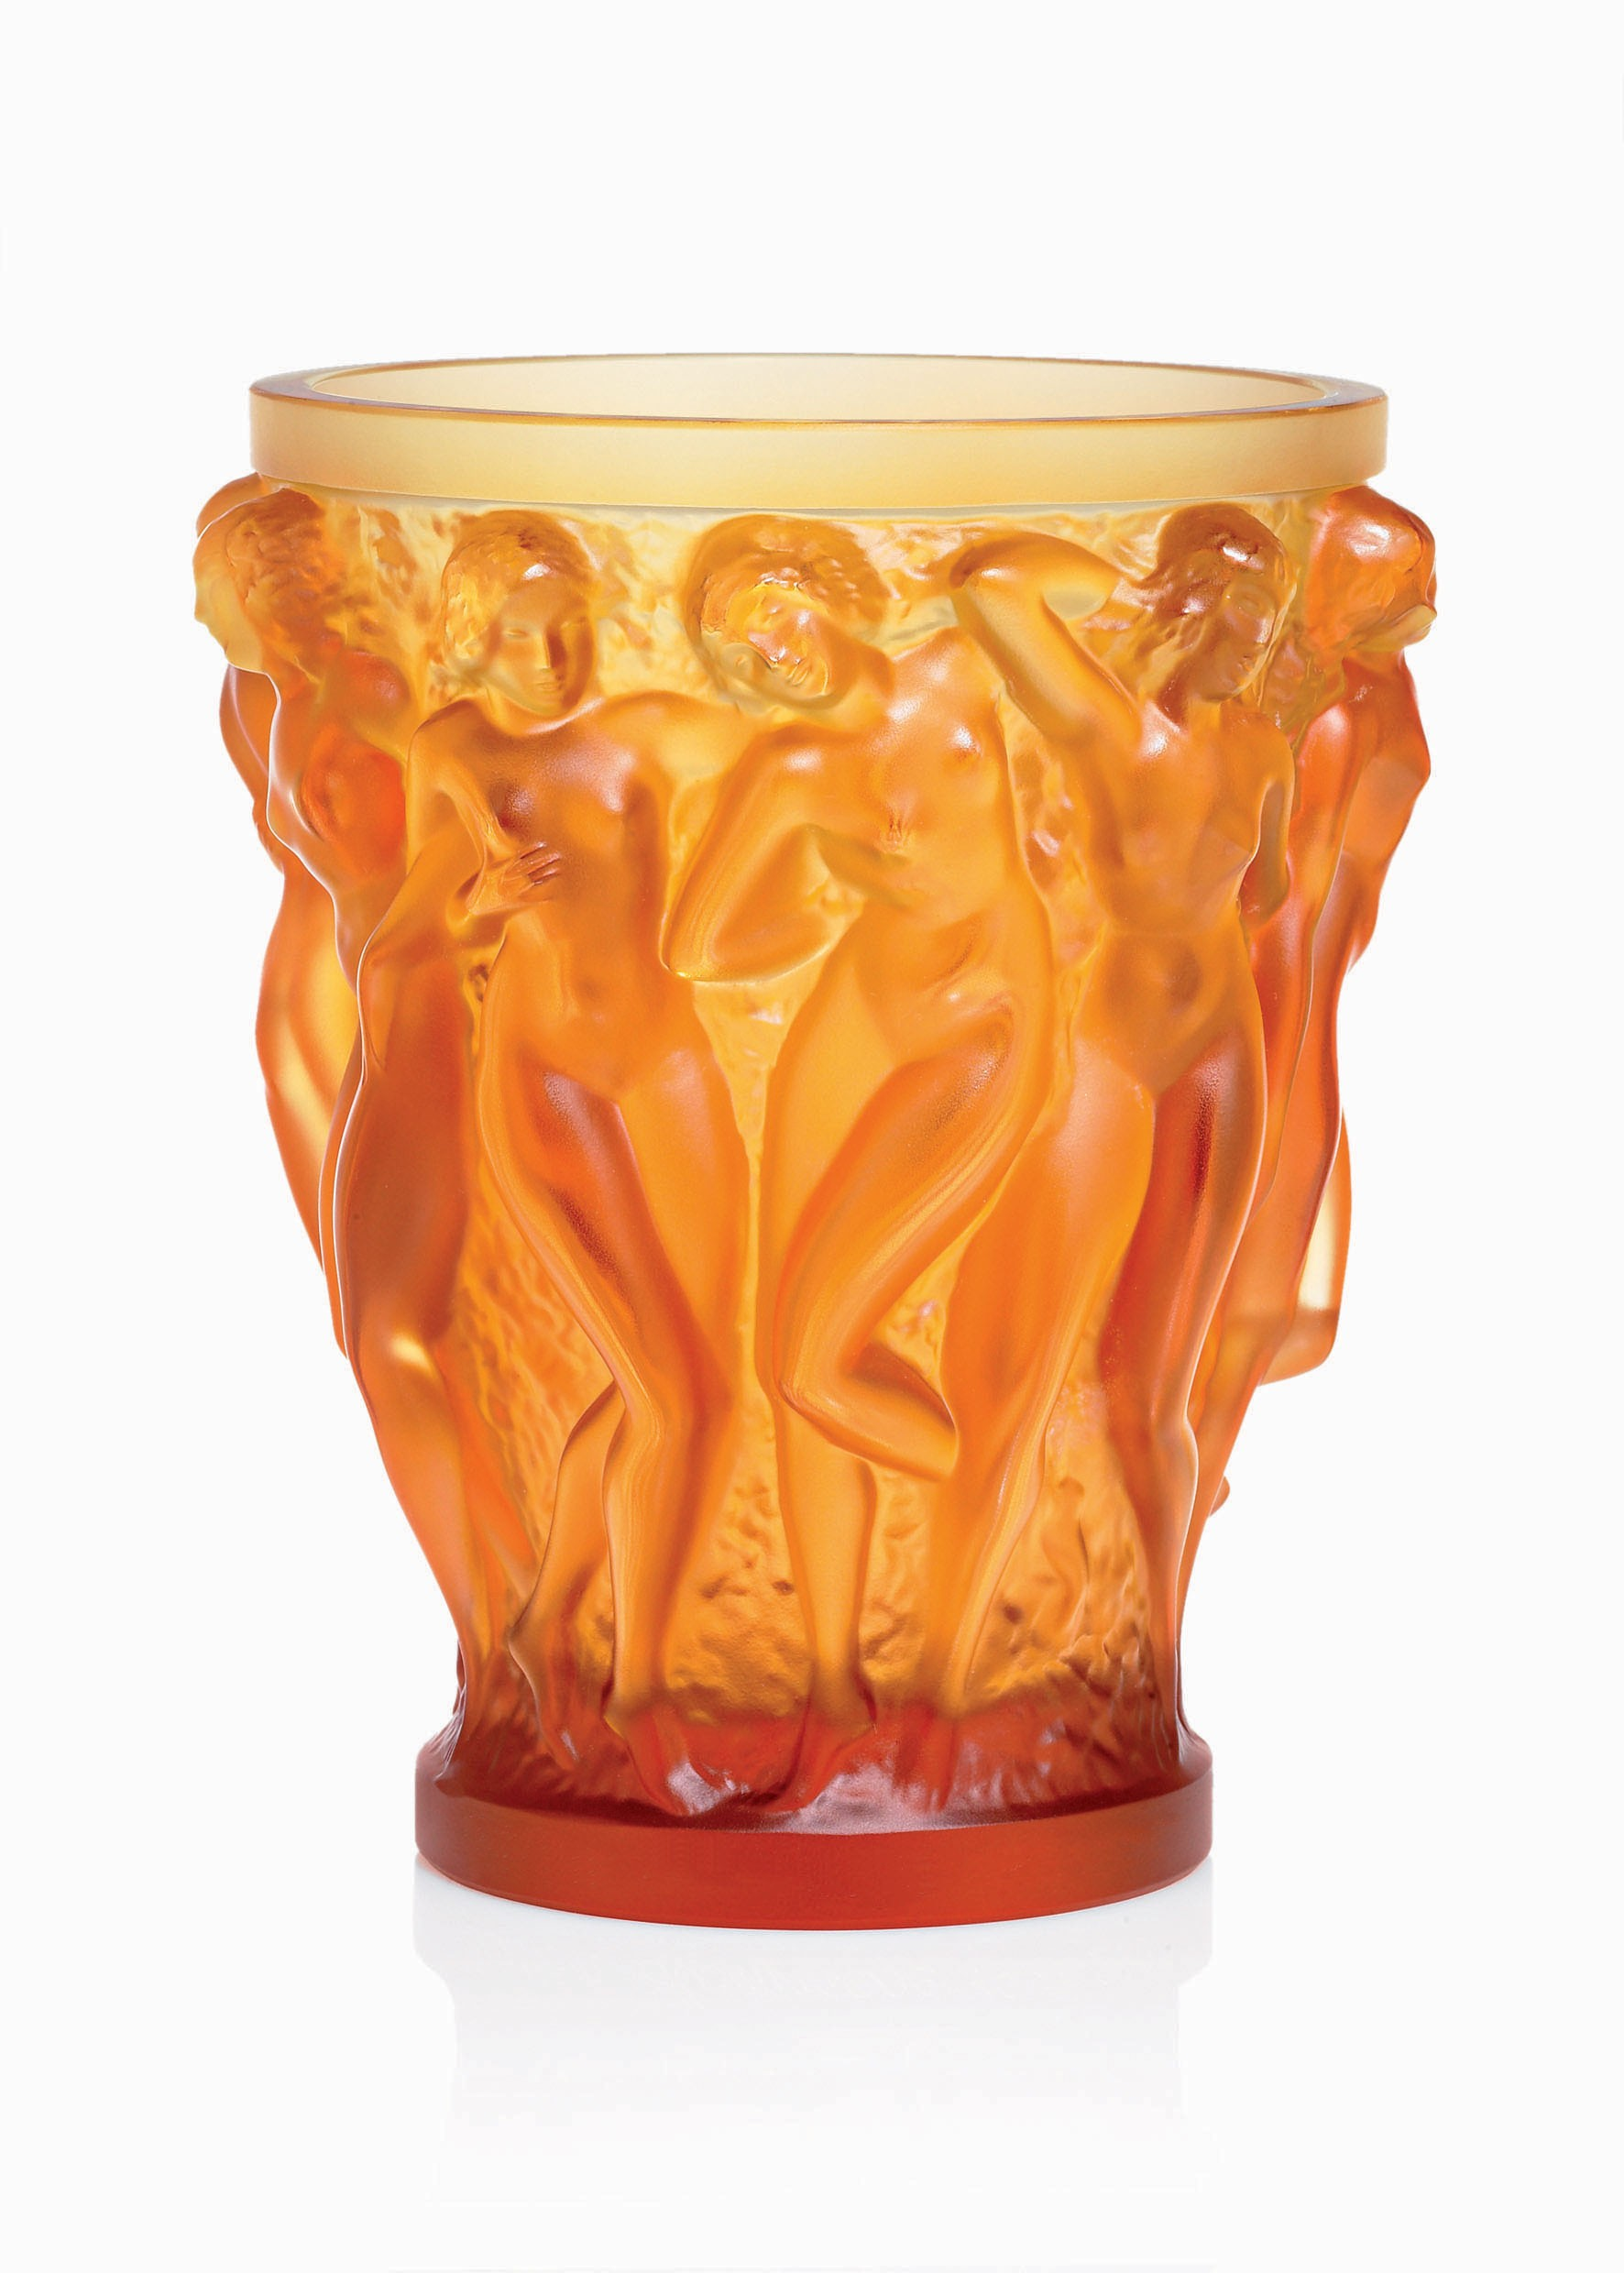 Lalique fairy vase vases sale for Lalique vase